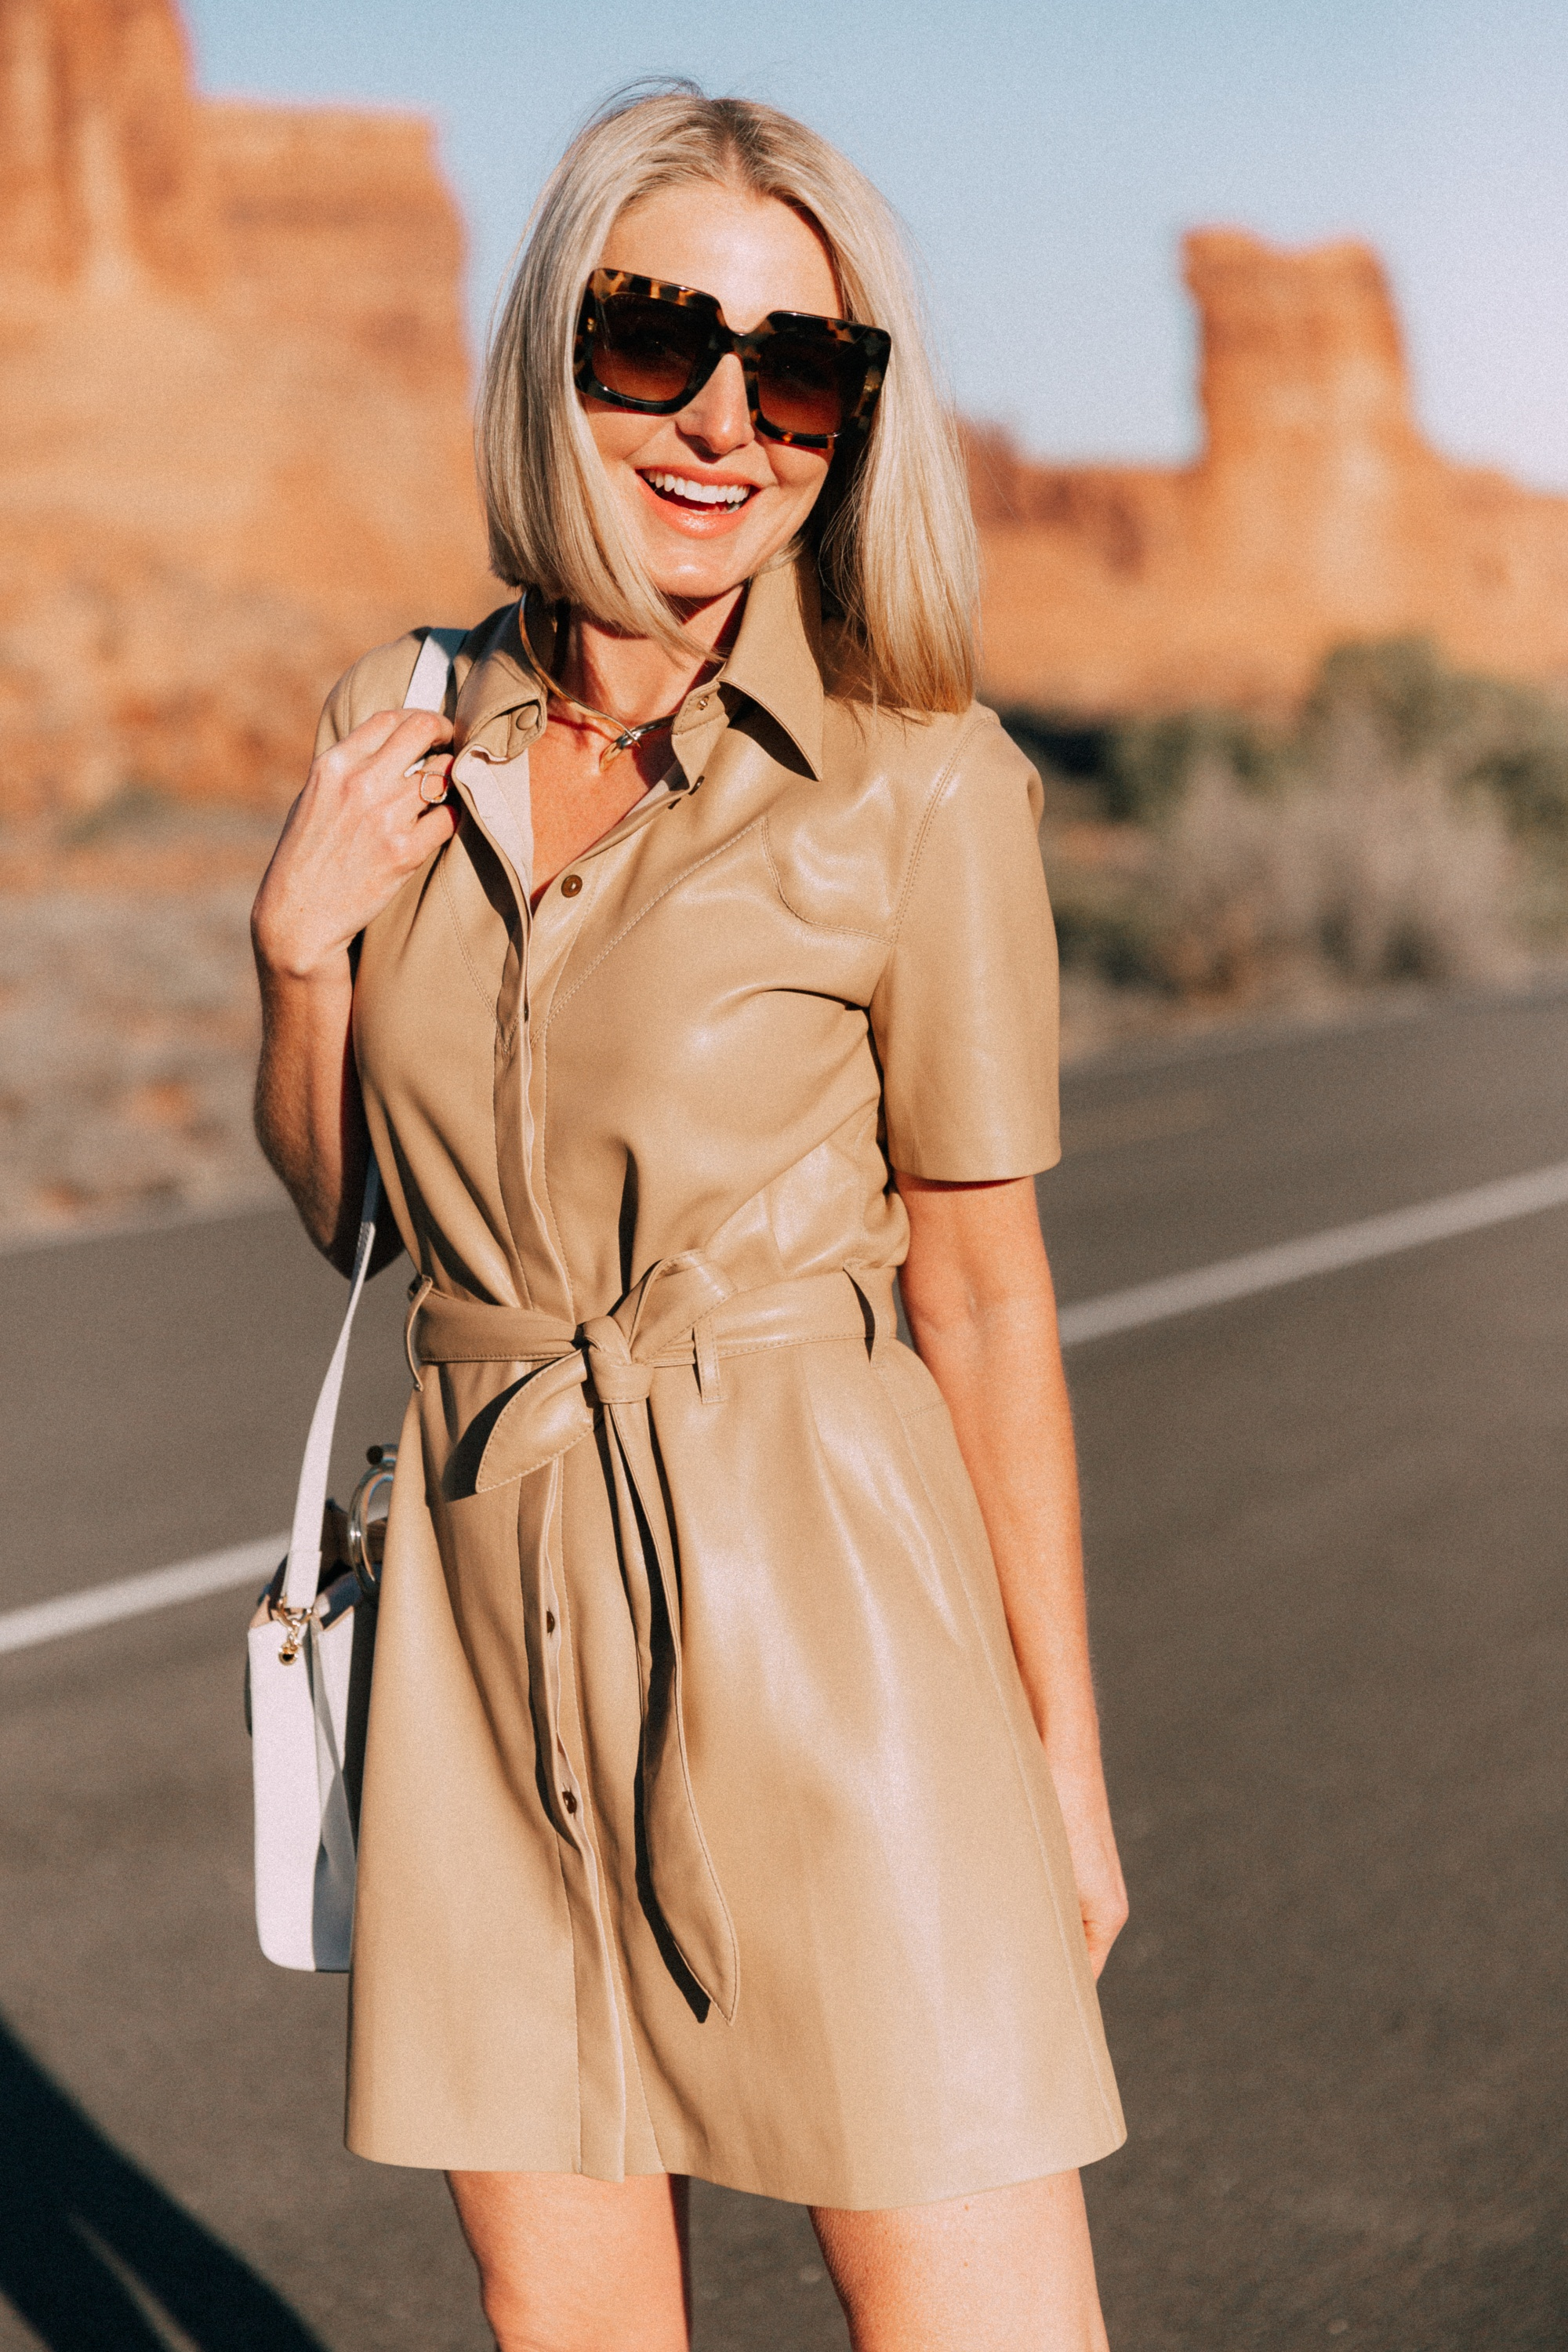 Spring Dresses, Fashion blogger Erin Busbee of BusbeeStyle.com wearing a chic tan leather dress with Dolce Vita python heels and a Lizzie Fortunato bag in Moab, Utah